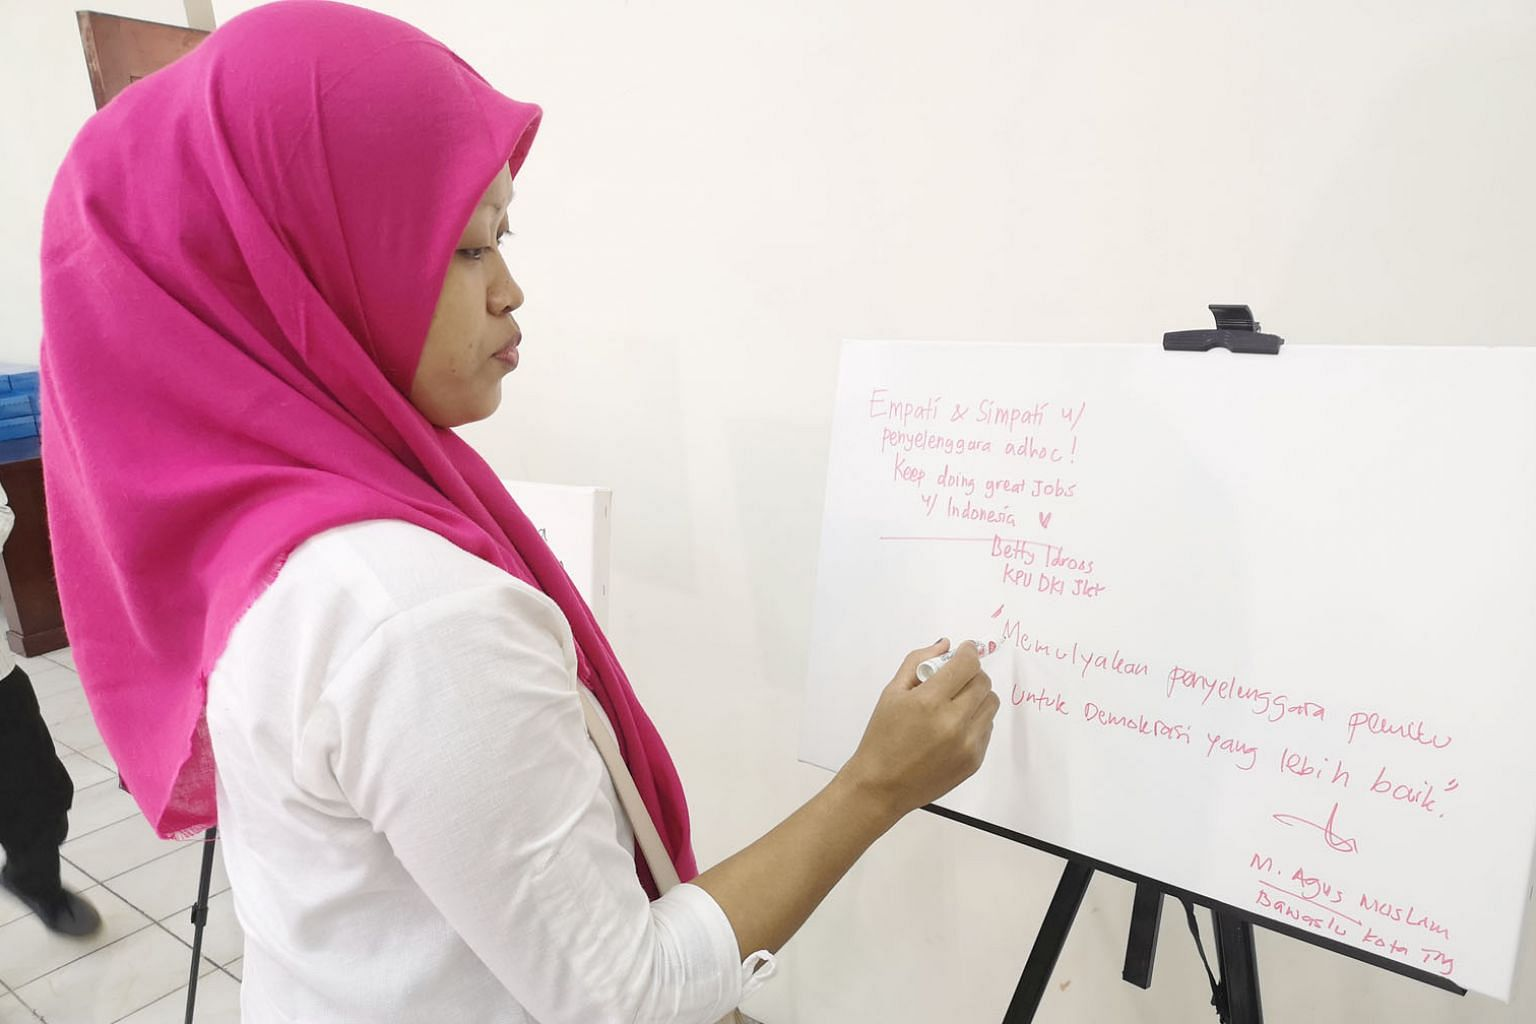 Madam Masnun, the widow of a security officer who died of exhaustion and heart pain after working long hours at a Bekasi polling station, writing a tribute to her late husband and others who succumbed to election fatigue monitoring Indonesia's April